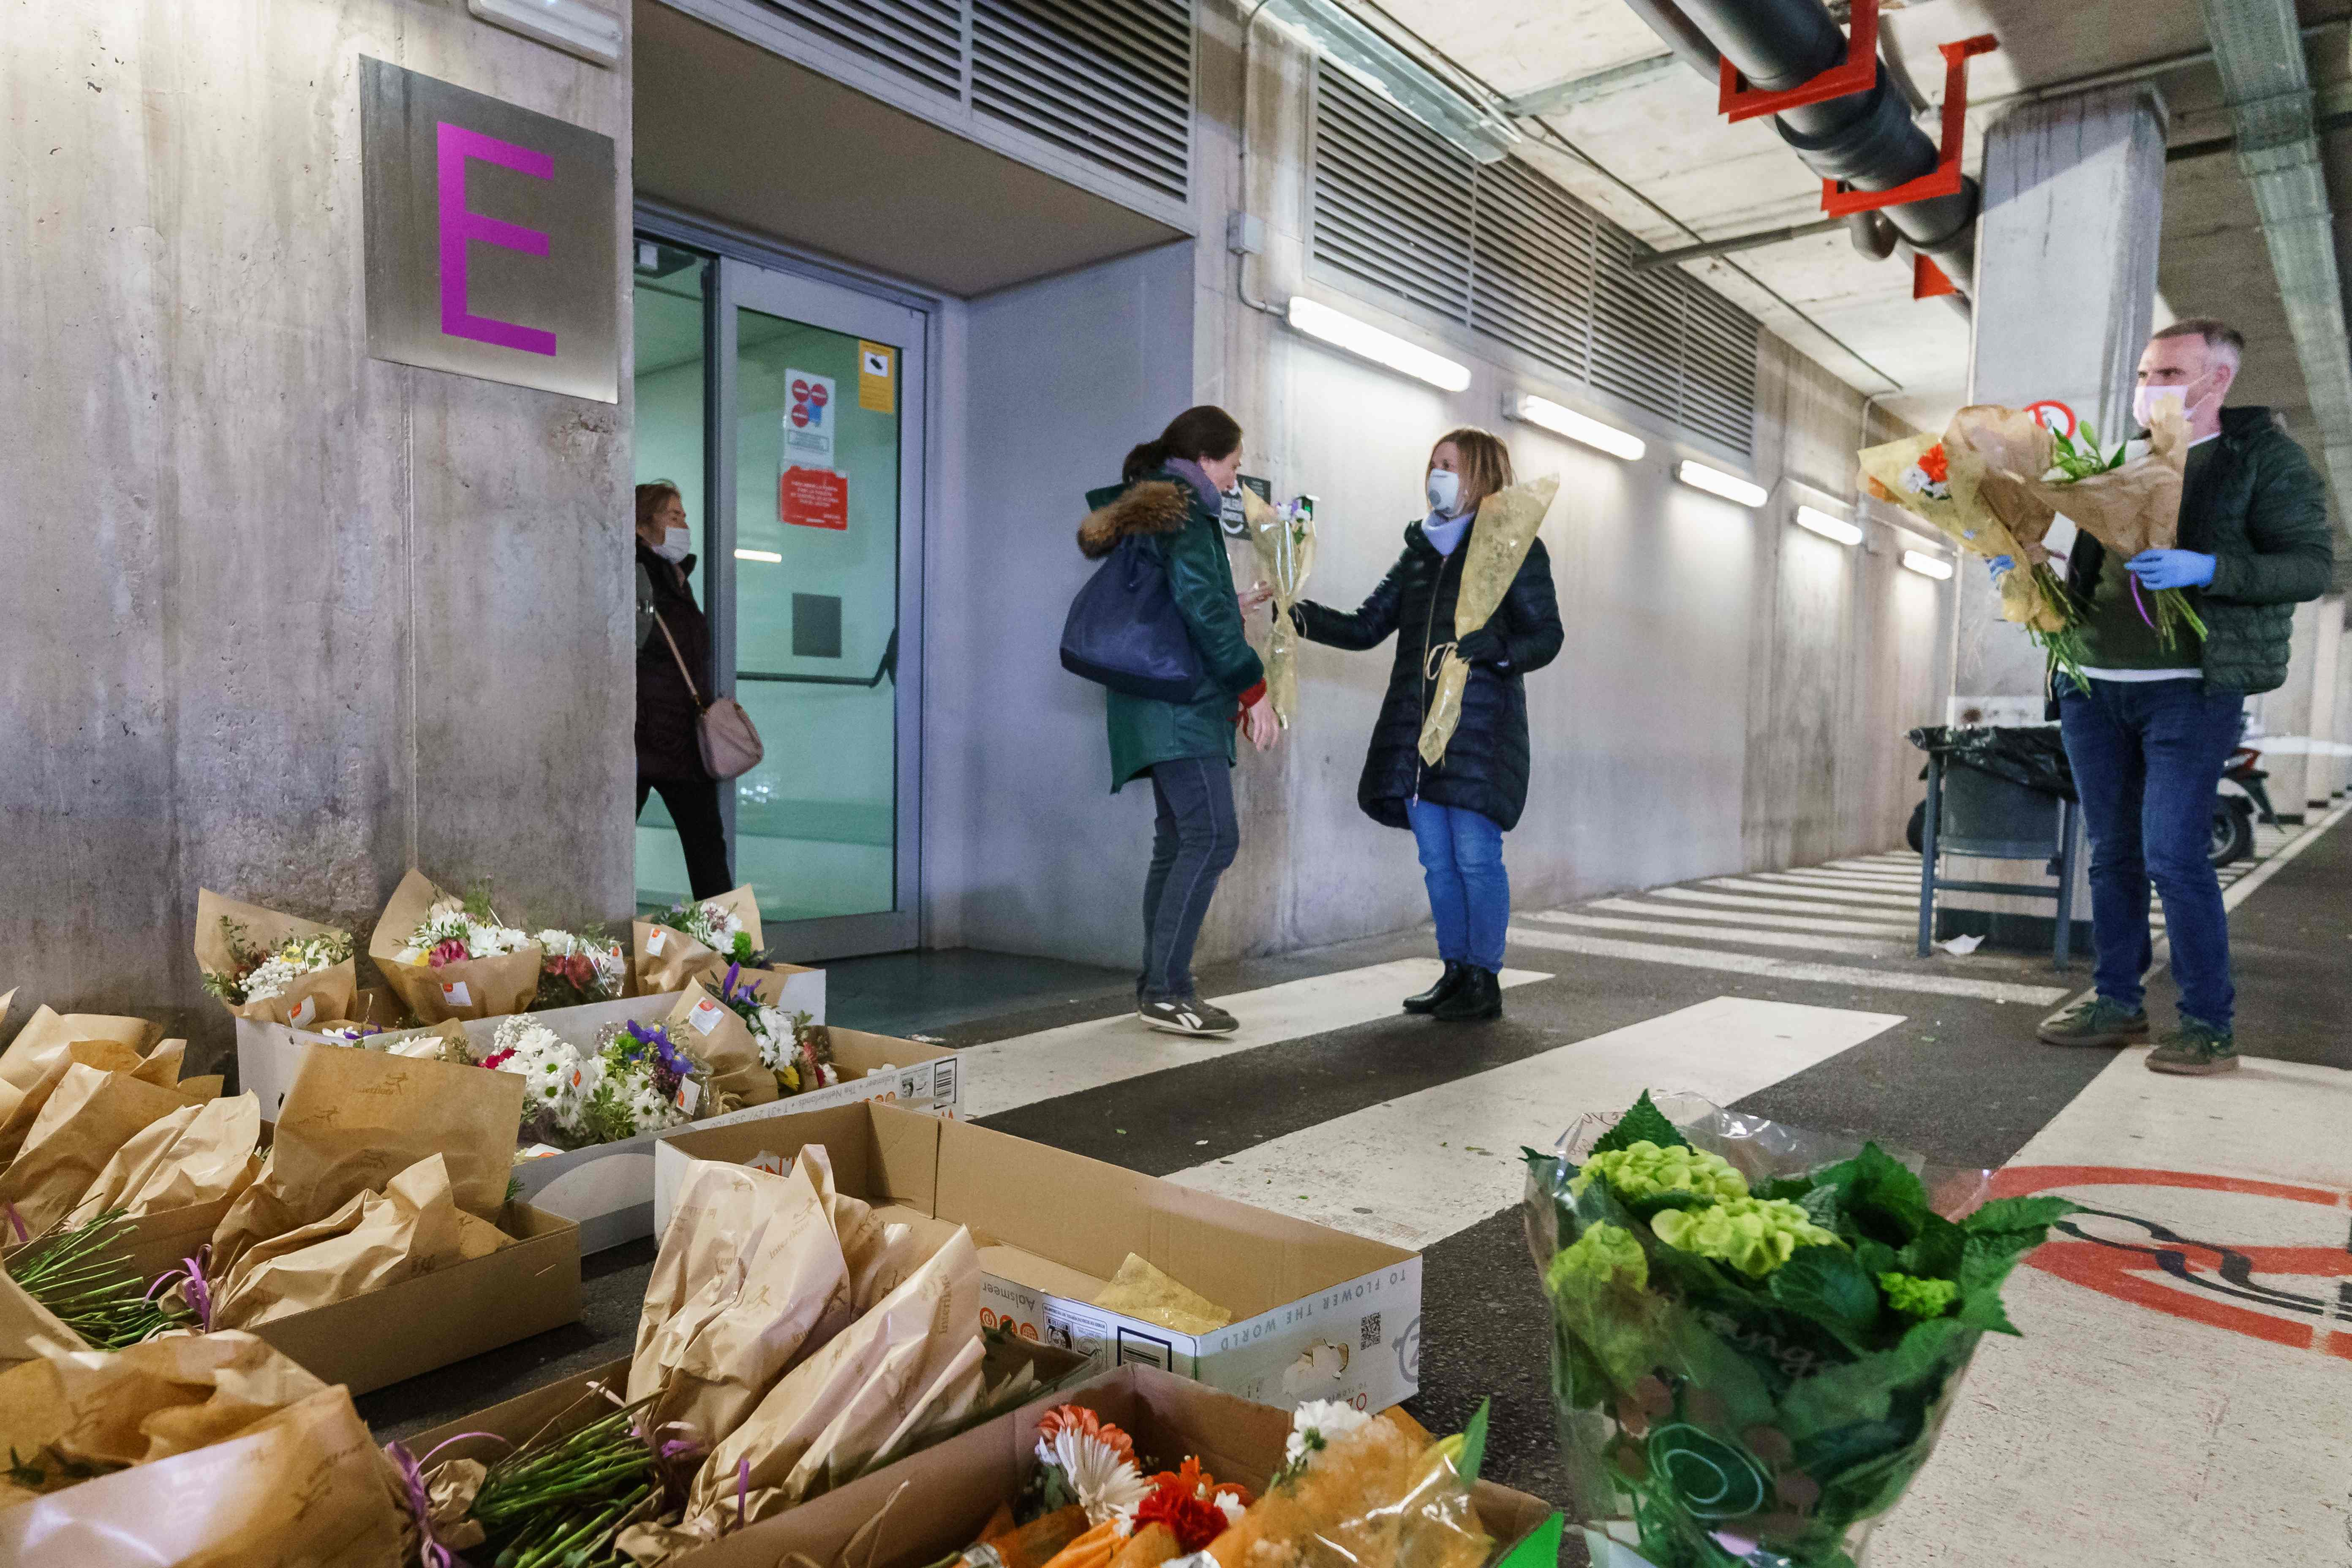 A florist hands a bouquet of flowers to a health worker outside the Burgos Hospital in Burgos, in northern Spain